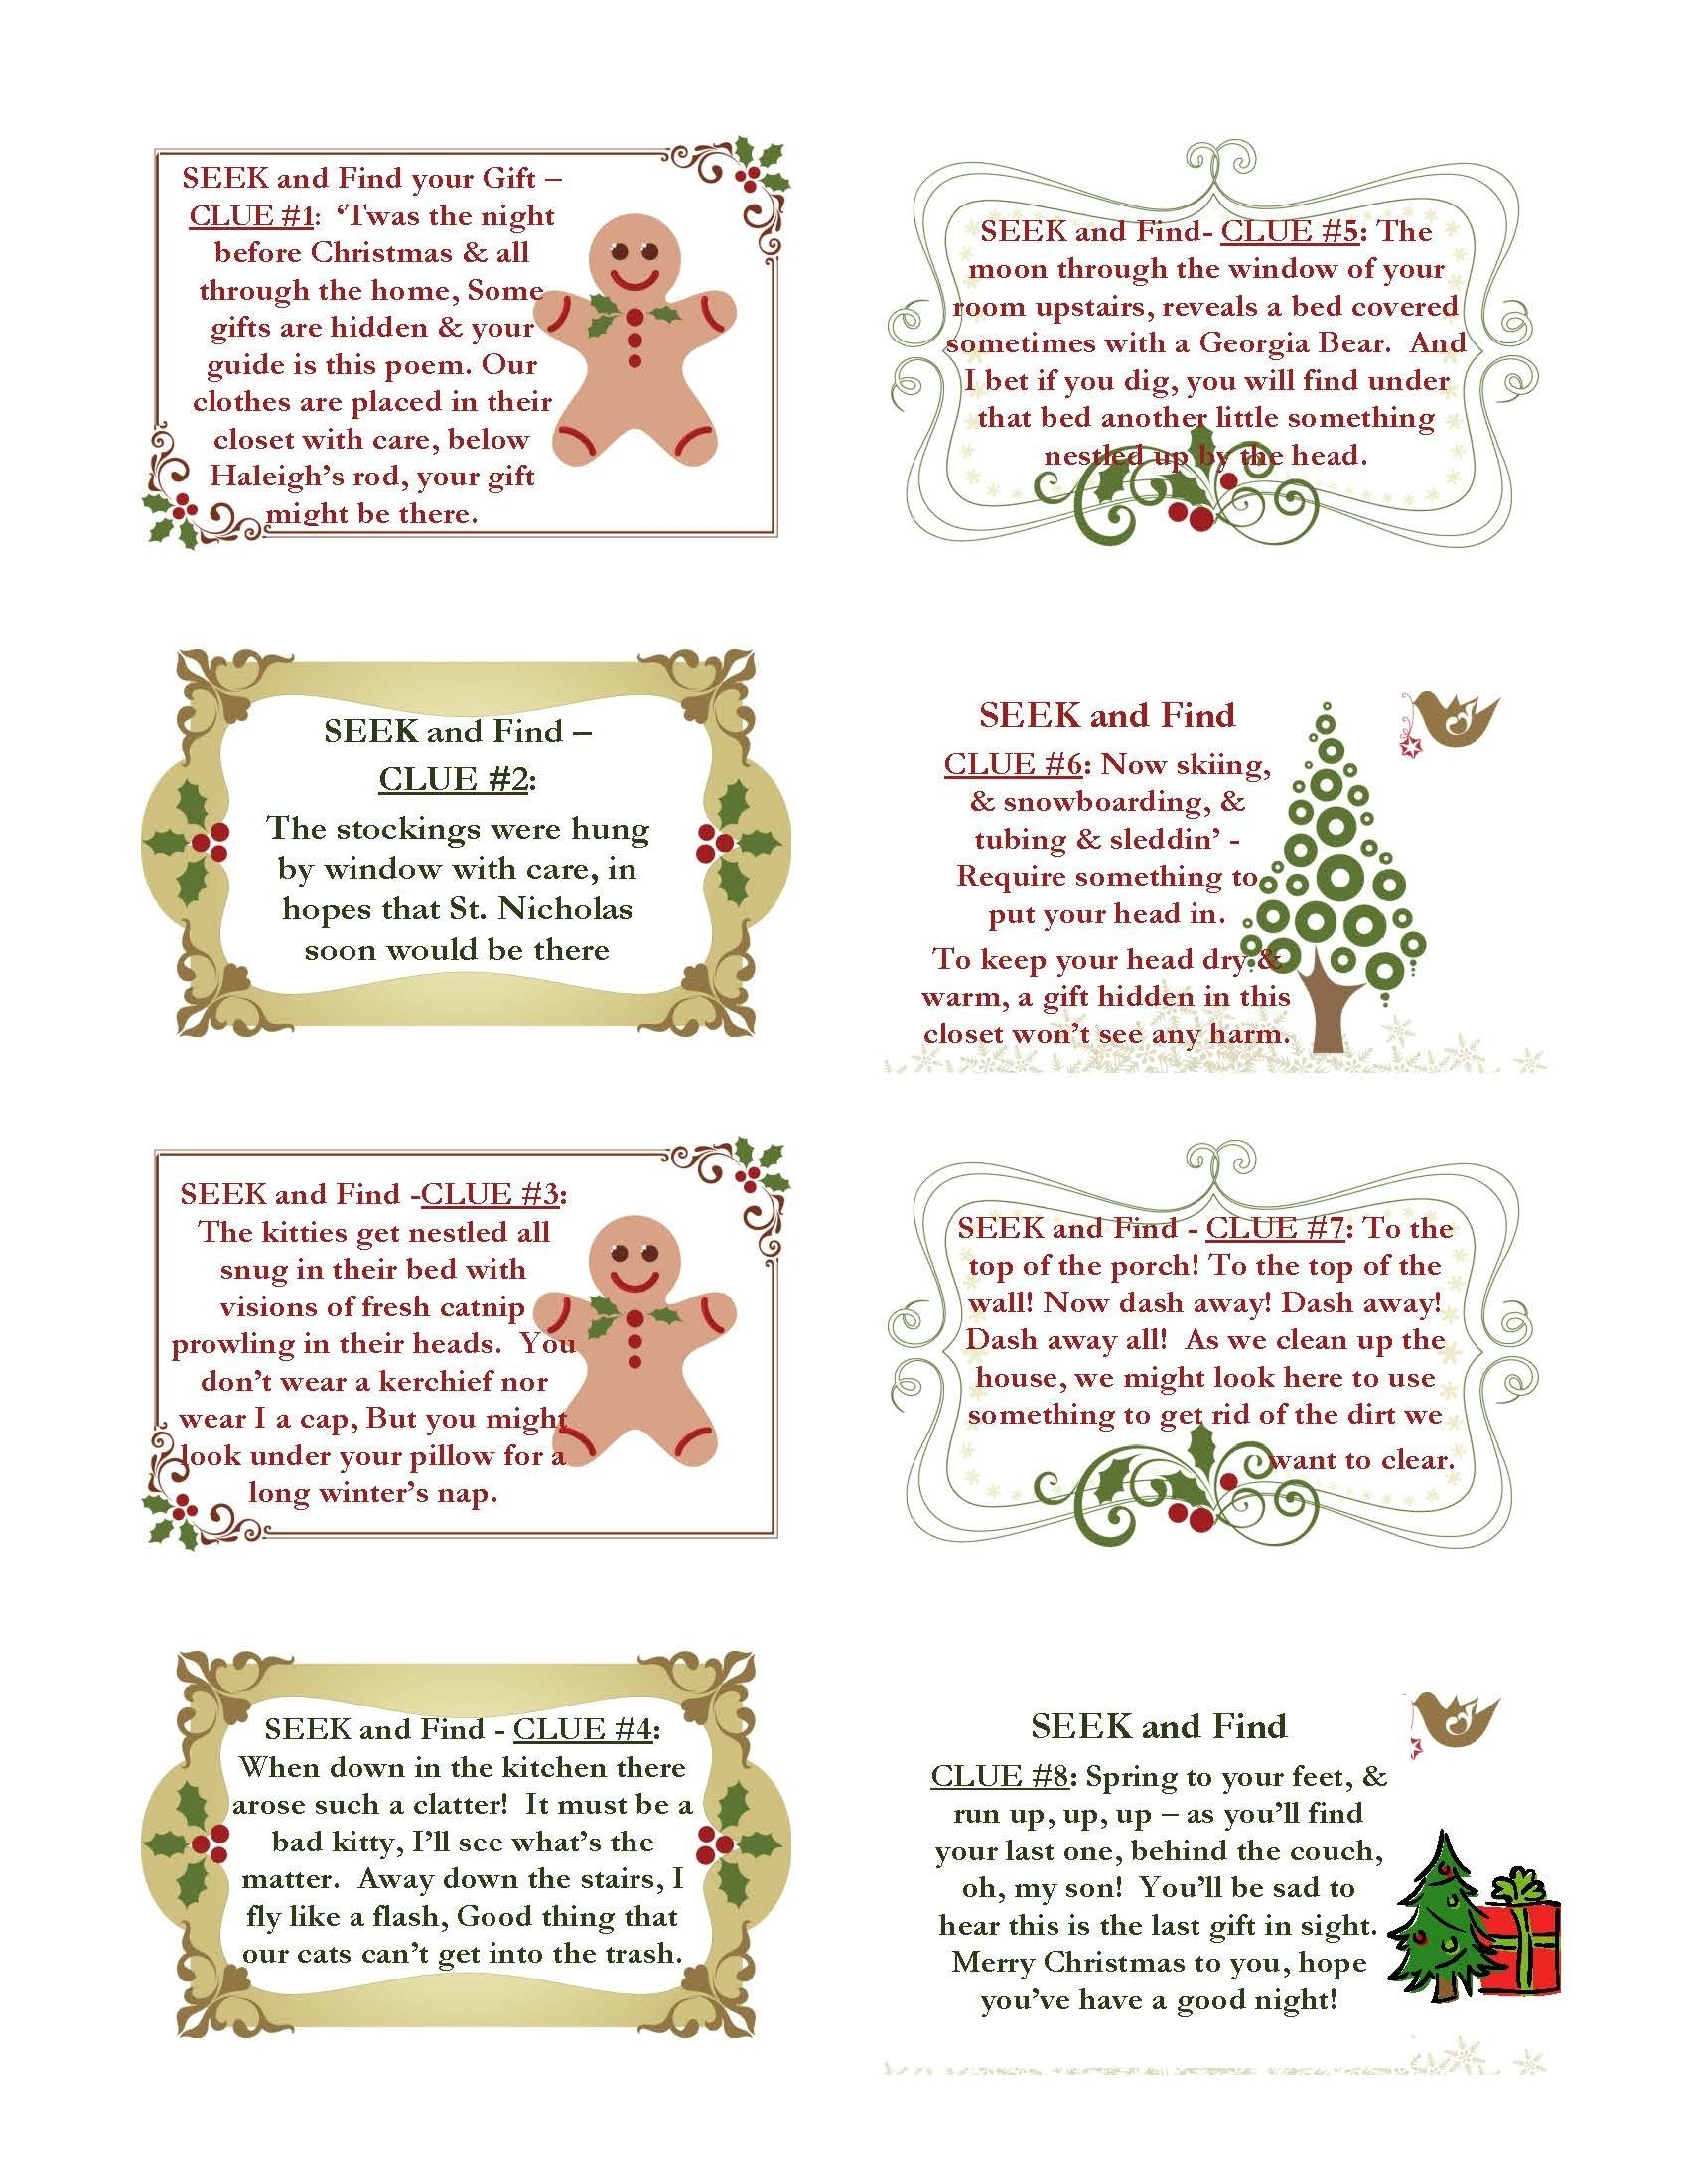 10 Fashionable Christmas Scavenger Hunt Ideas For Adults christmas present scavenger hunt clues christmas cards 2020